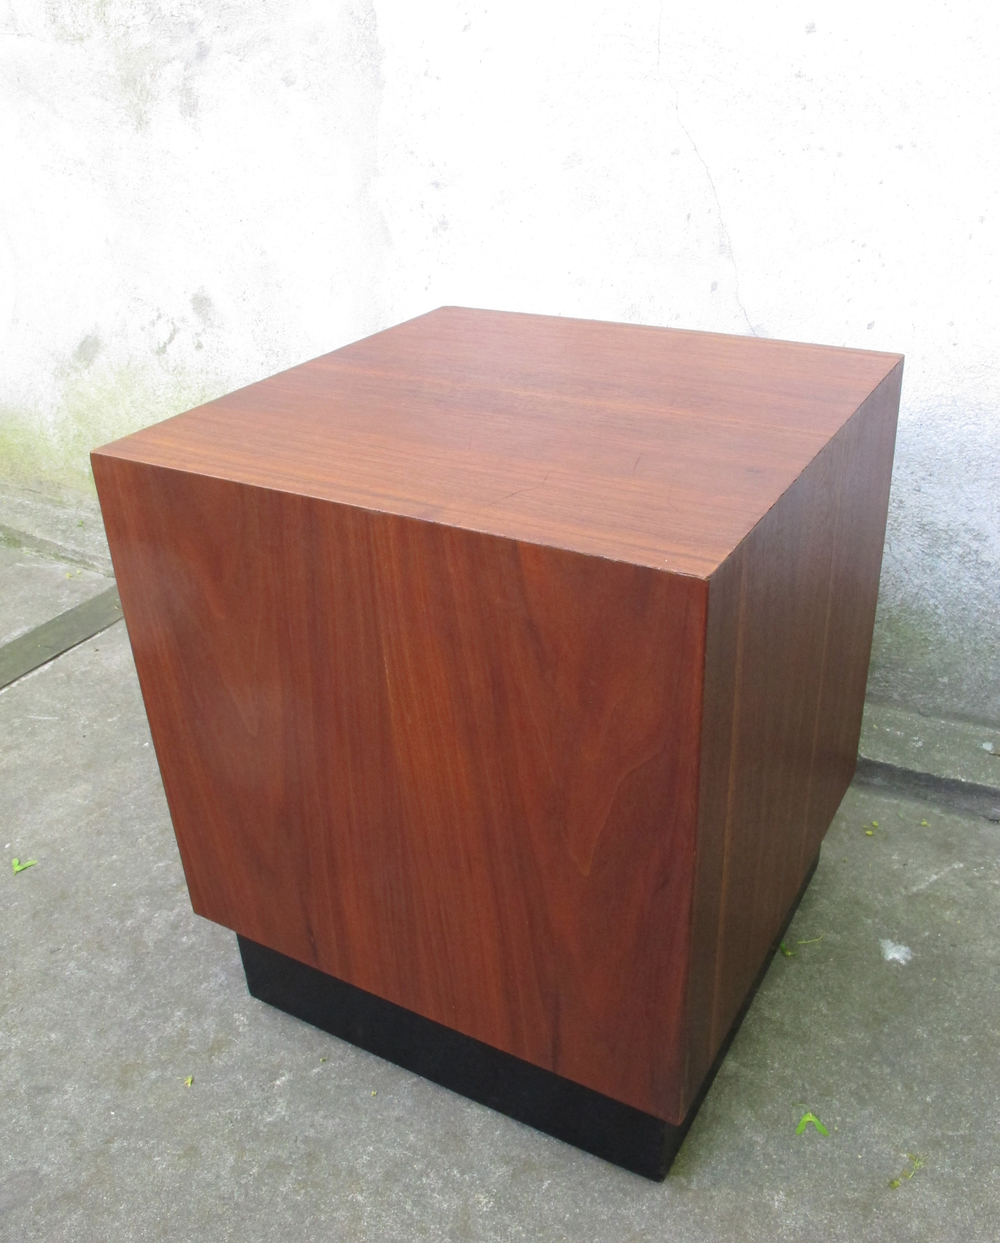 MID CENTURY SQUARE WALNUT SIDE TABLE ATTRIBUTED TO ADRIAN PEARSALL